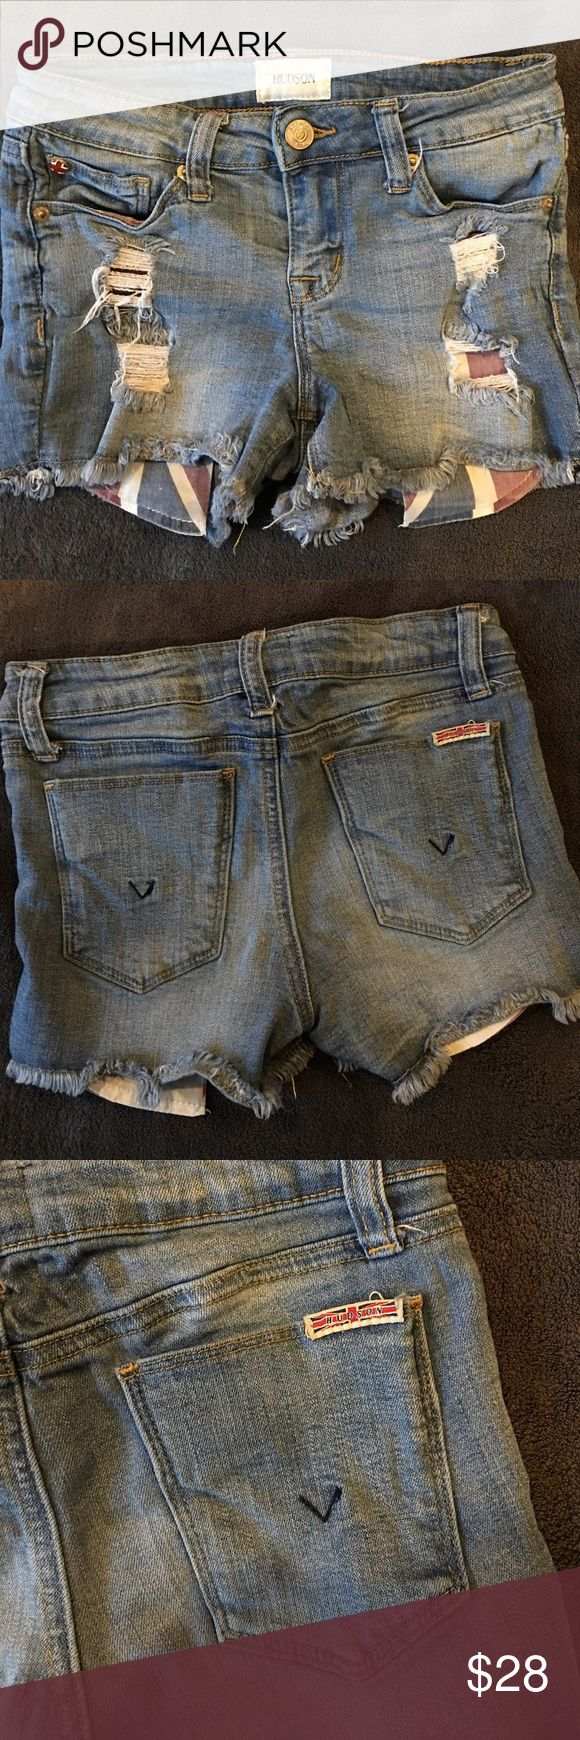 Kids Hudson jean shorts Gently worn, like new. Distressed denim and soft material. Hudson Jeans Bottoms Shorts